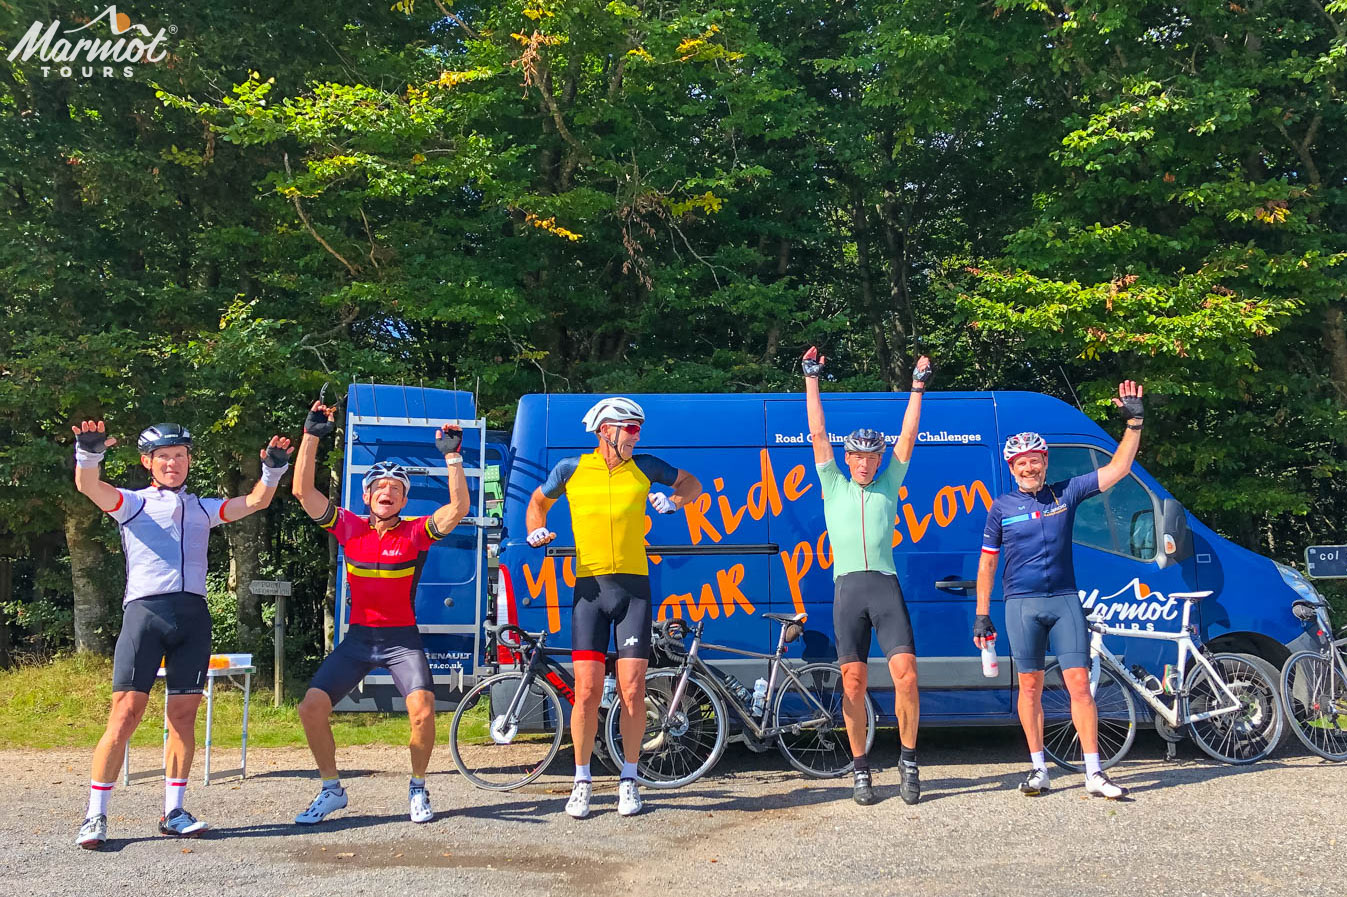 Cyclists jumping for joy on Marmot Tours cycling holidays in France